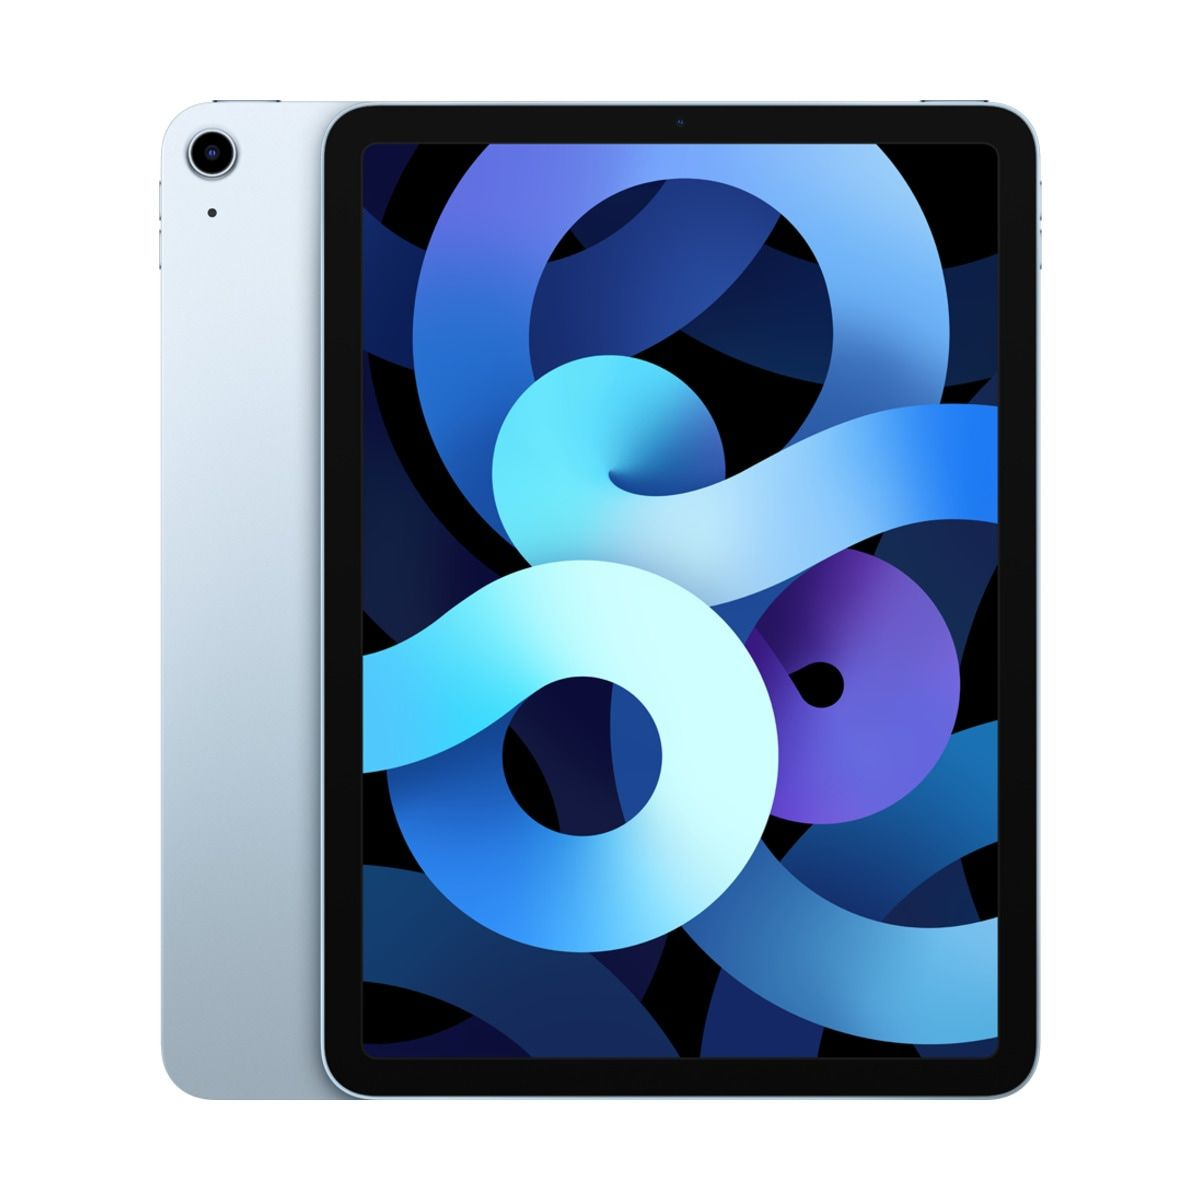 iPad Air Wi-Fi 256GB - Sky Blue